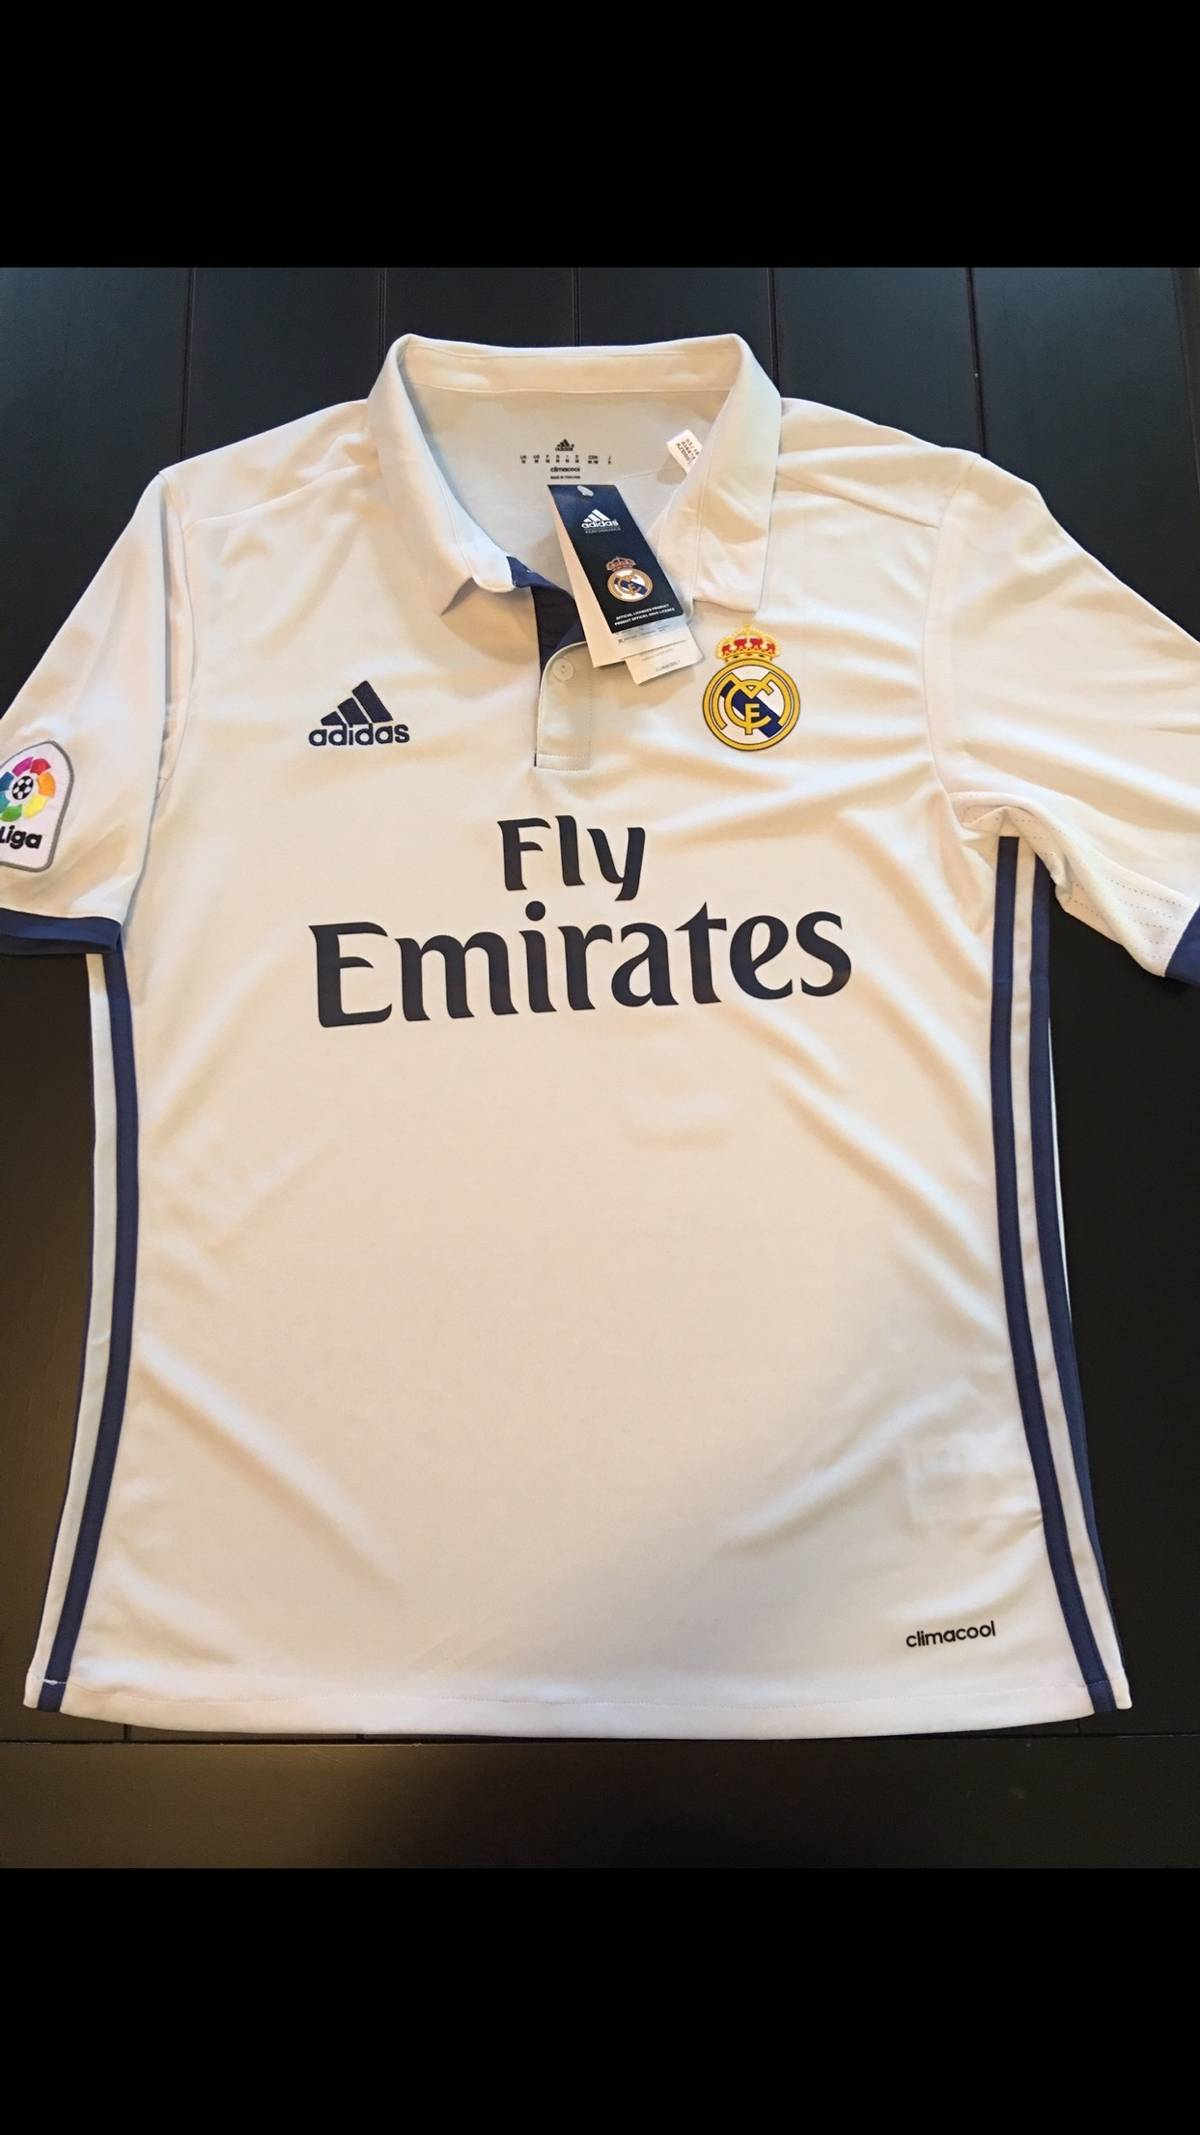 timeless design 5269a fe511 Adidas Cristiano Ronaldo 16/17 Real Madrid Home Jersey Size L $32